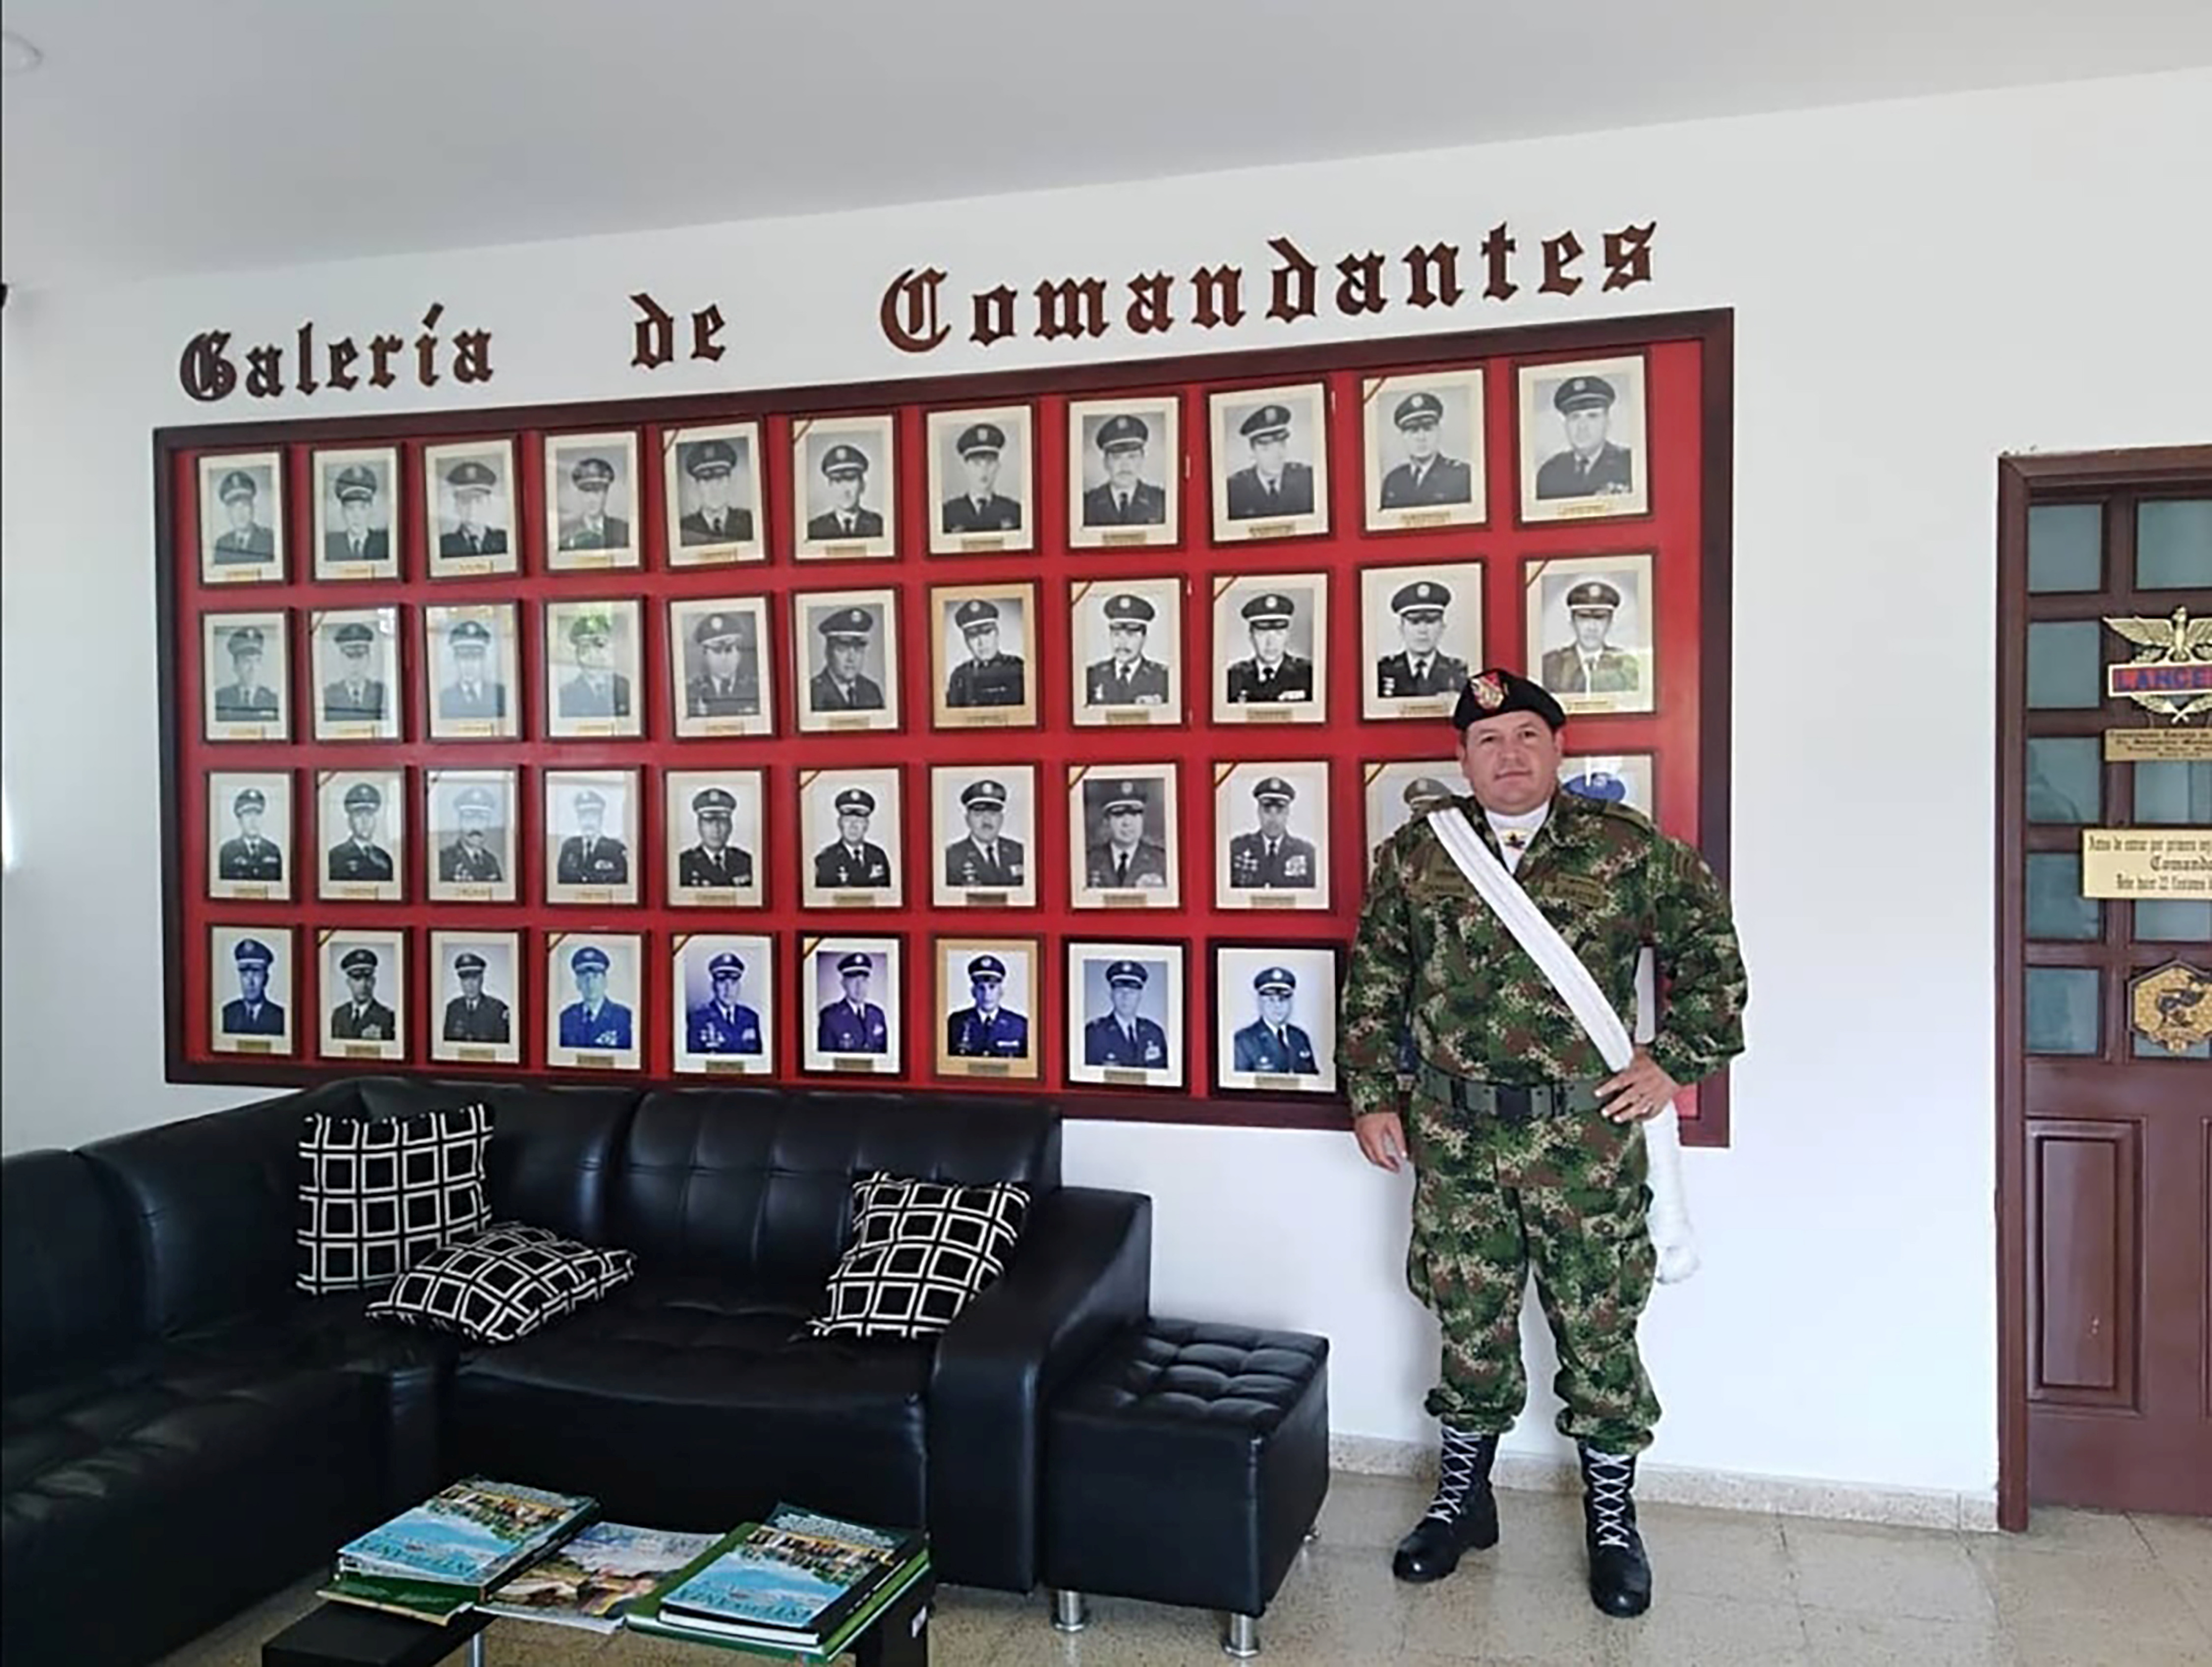 Duberney Capador Giraldo, a former Colombian soldier killed during the operation to capture those allegedly implicated in the assassination of Haitian President Jovenel Moise, is pictured during his military career, in Tolemaida, Colombia on this undated handout picture, obtained by Reuters July 10, 2021. Jenny Capador Giraldo/Handout via REUTERS ATTENTION EDITORS - THIS IMAGE HAS BEEN SUPPLIED BY A THIRD PARTY.